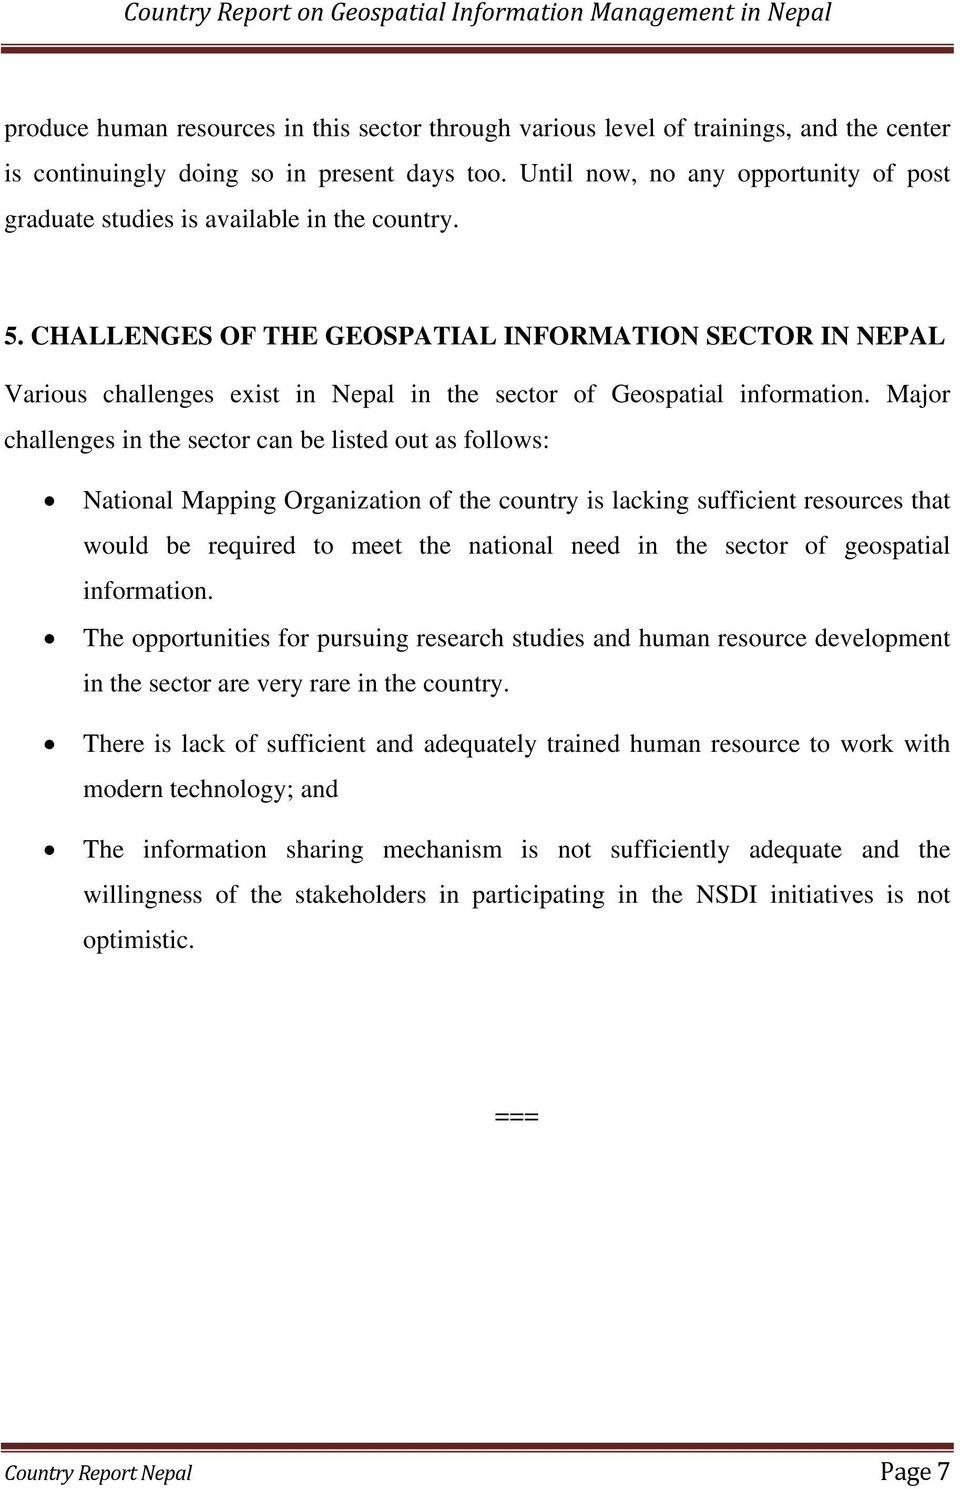 CHALLENGES OF THE GEOSPATIAL INFORMATION SECTOR IN NEPAL Various challenges exist in Nepal in the sector of Geospatial information.